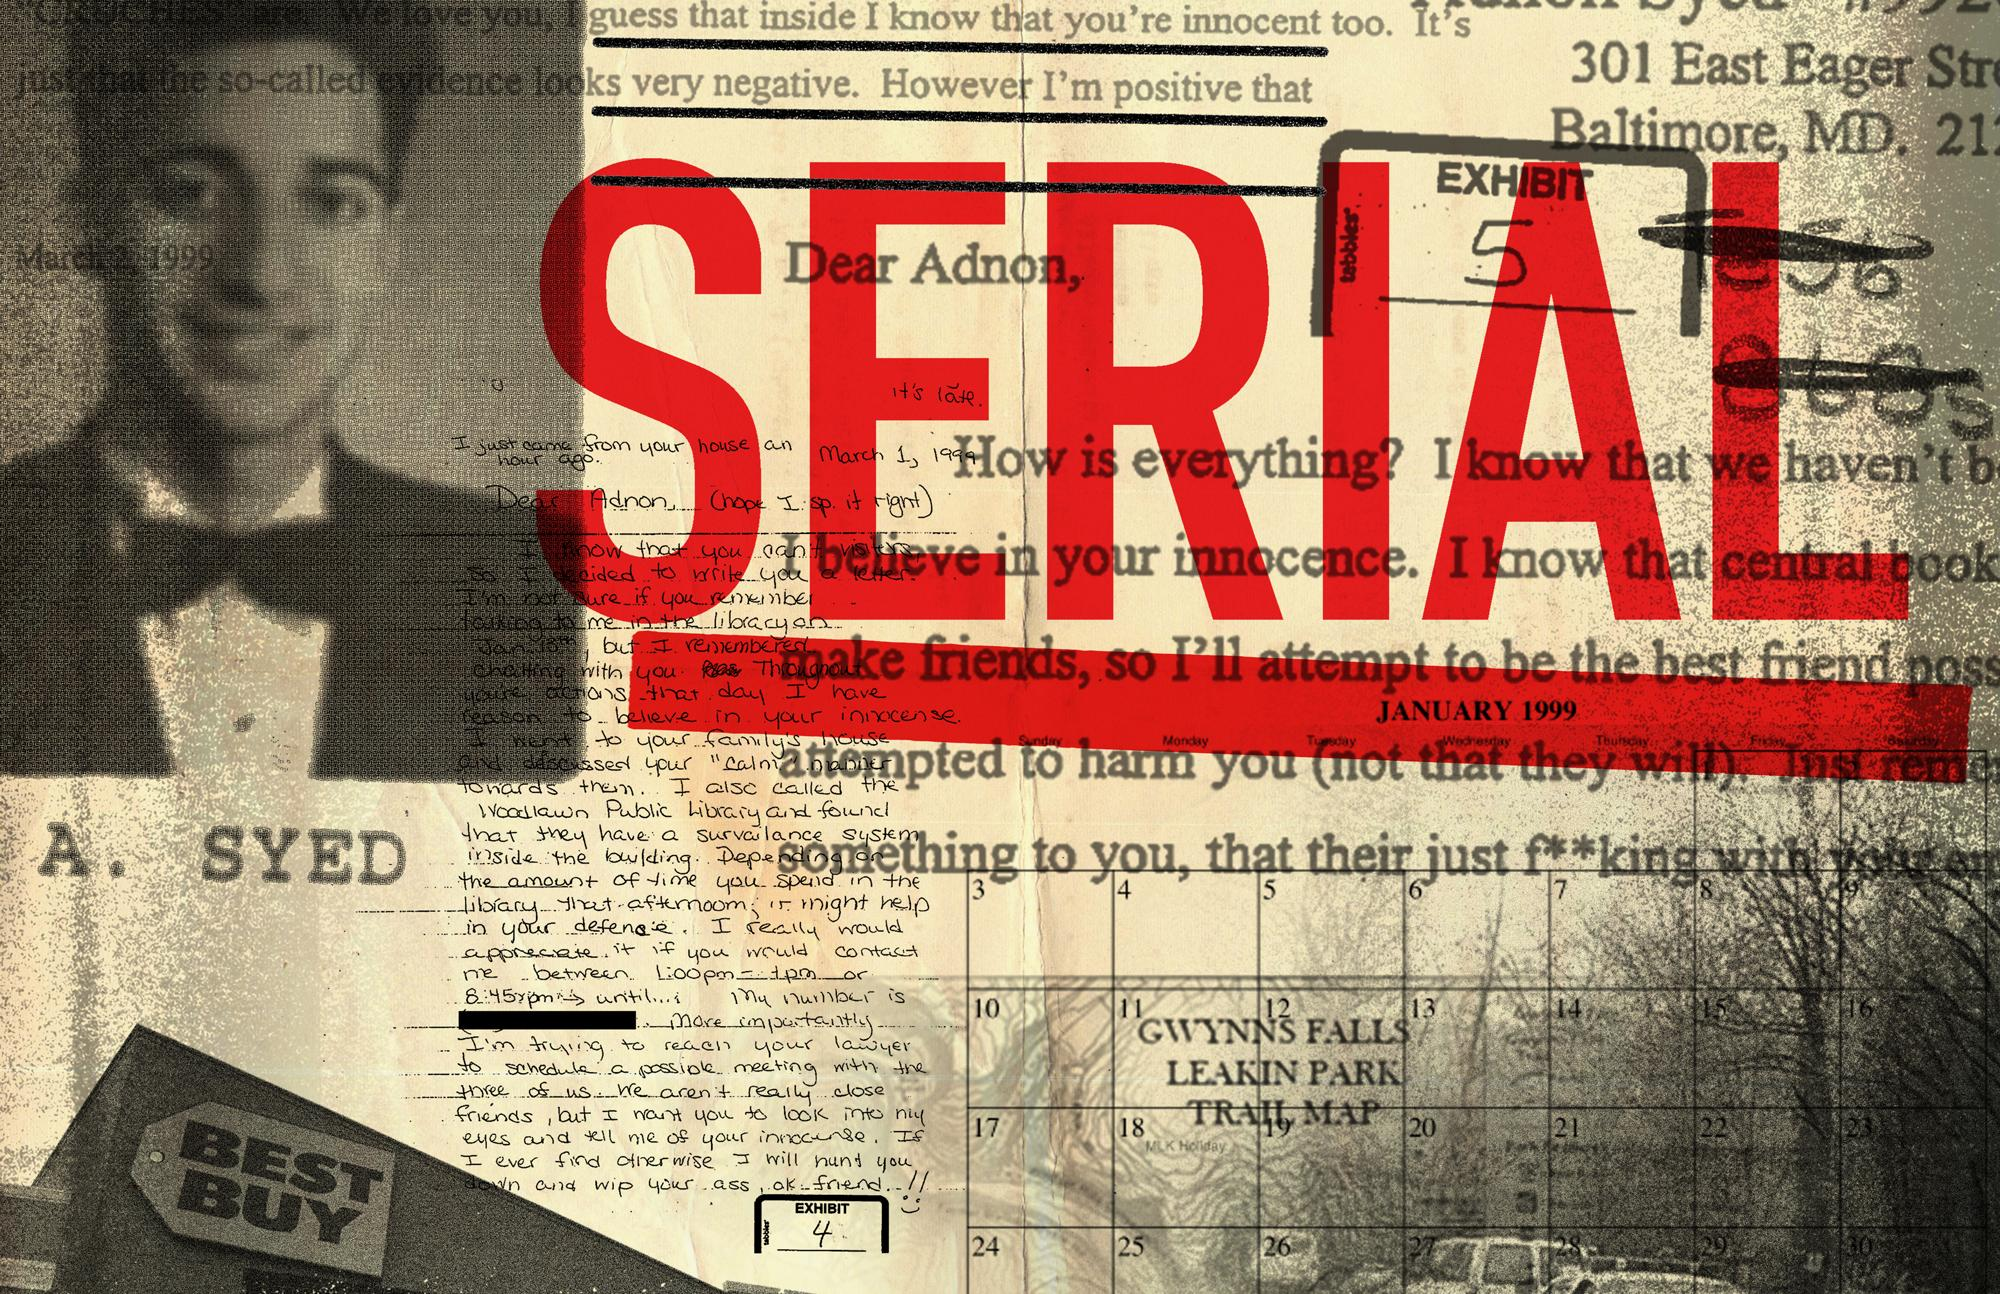 The latest updates from the ongoing 'Serial' drama